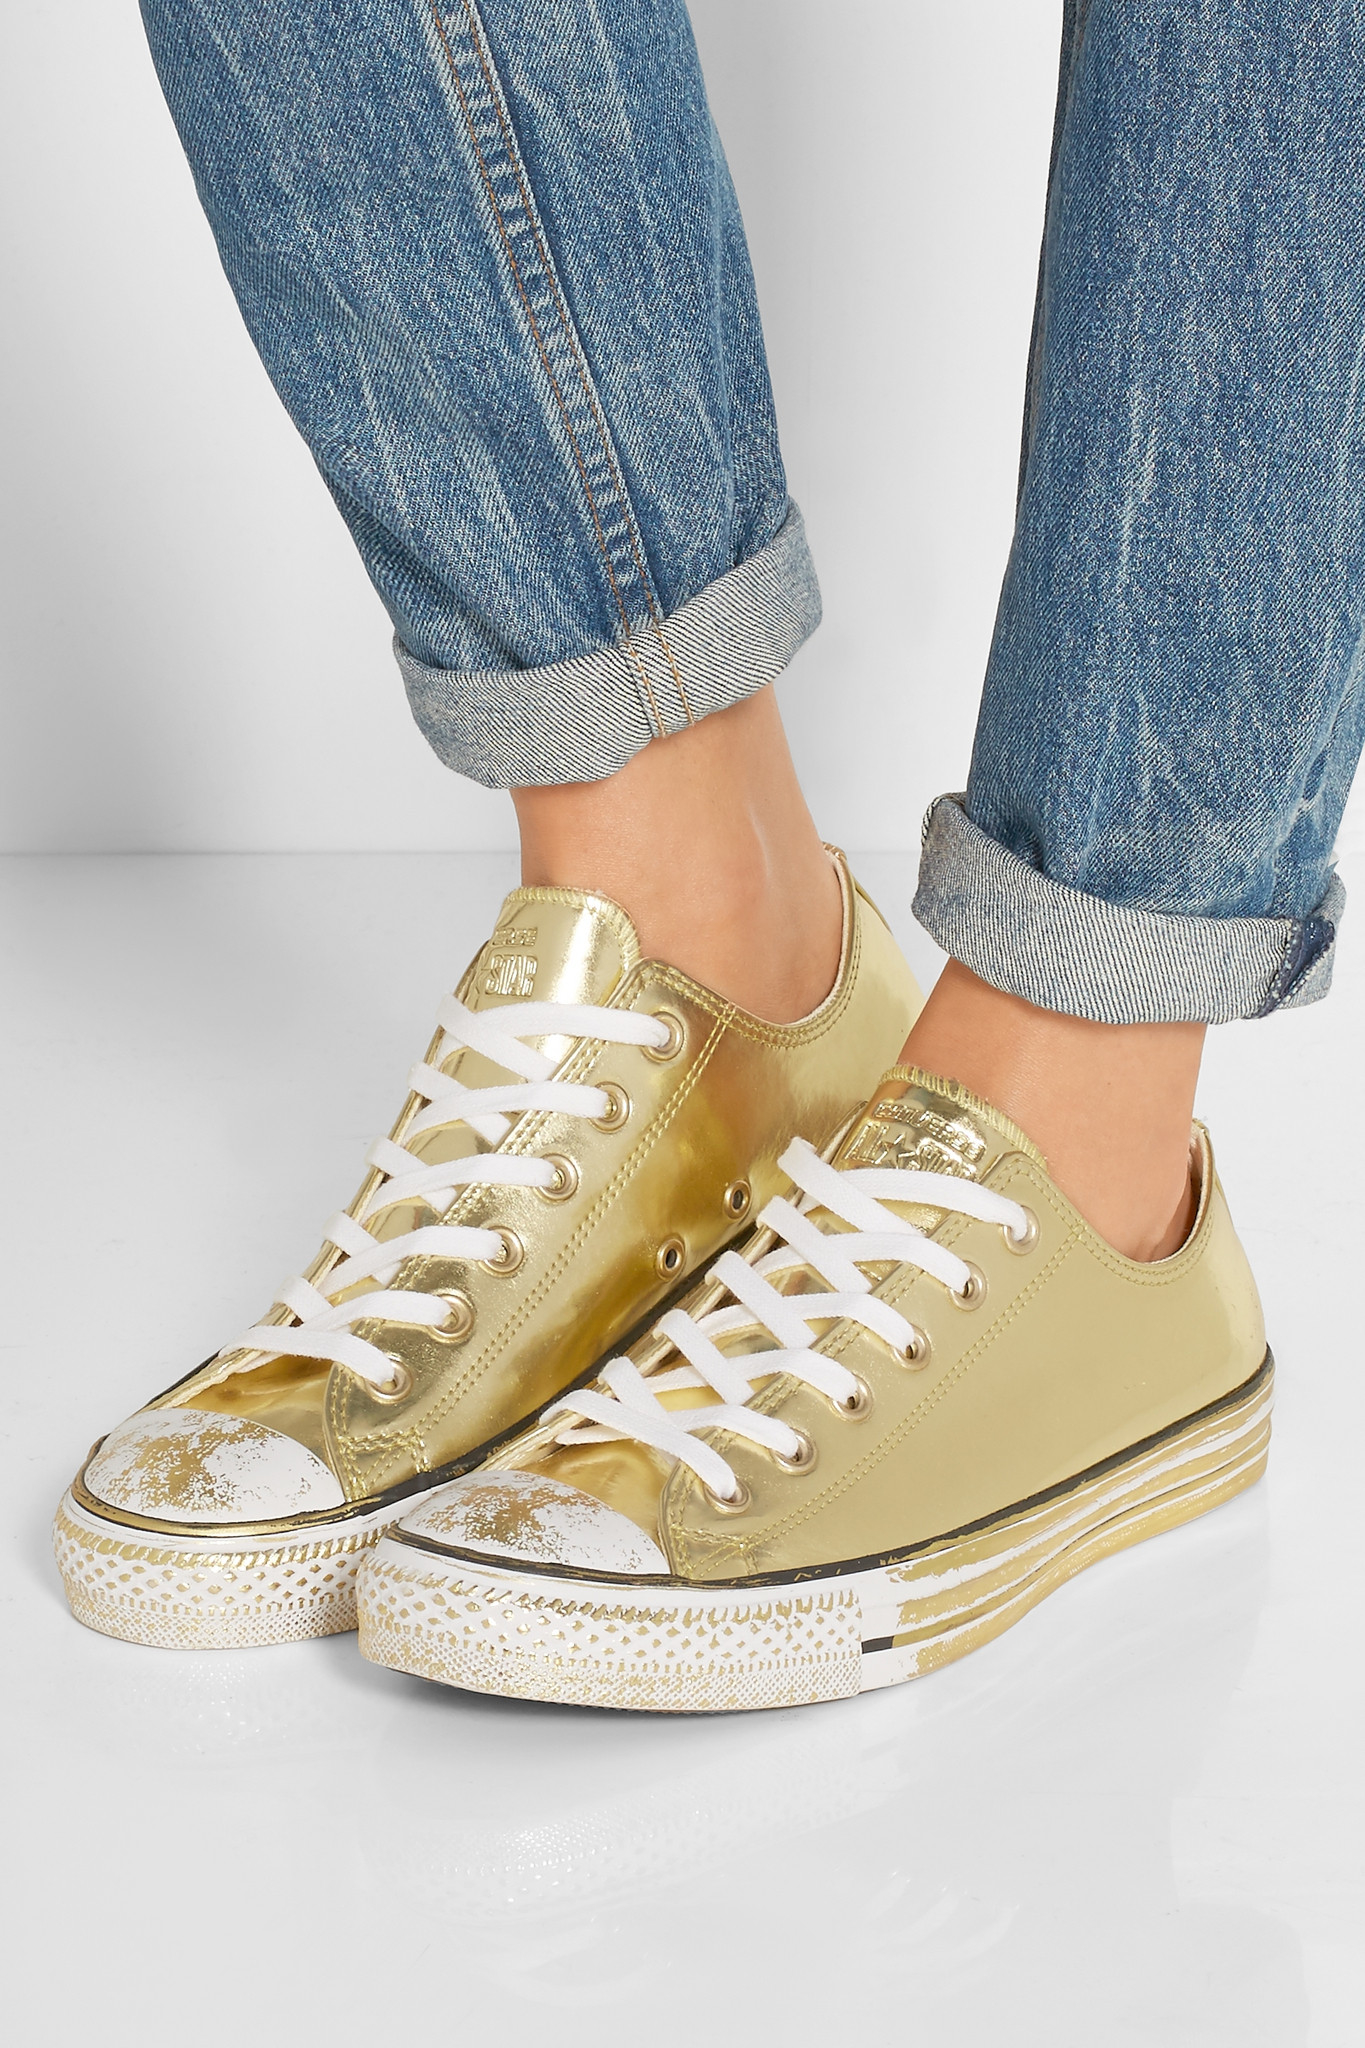 Converse Chuck Taylor All Star Chrome Metallic Leather Sneakers